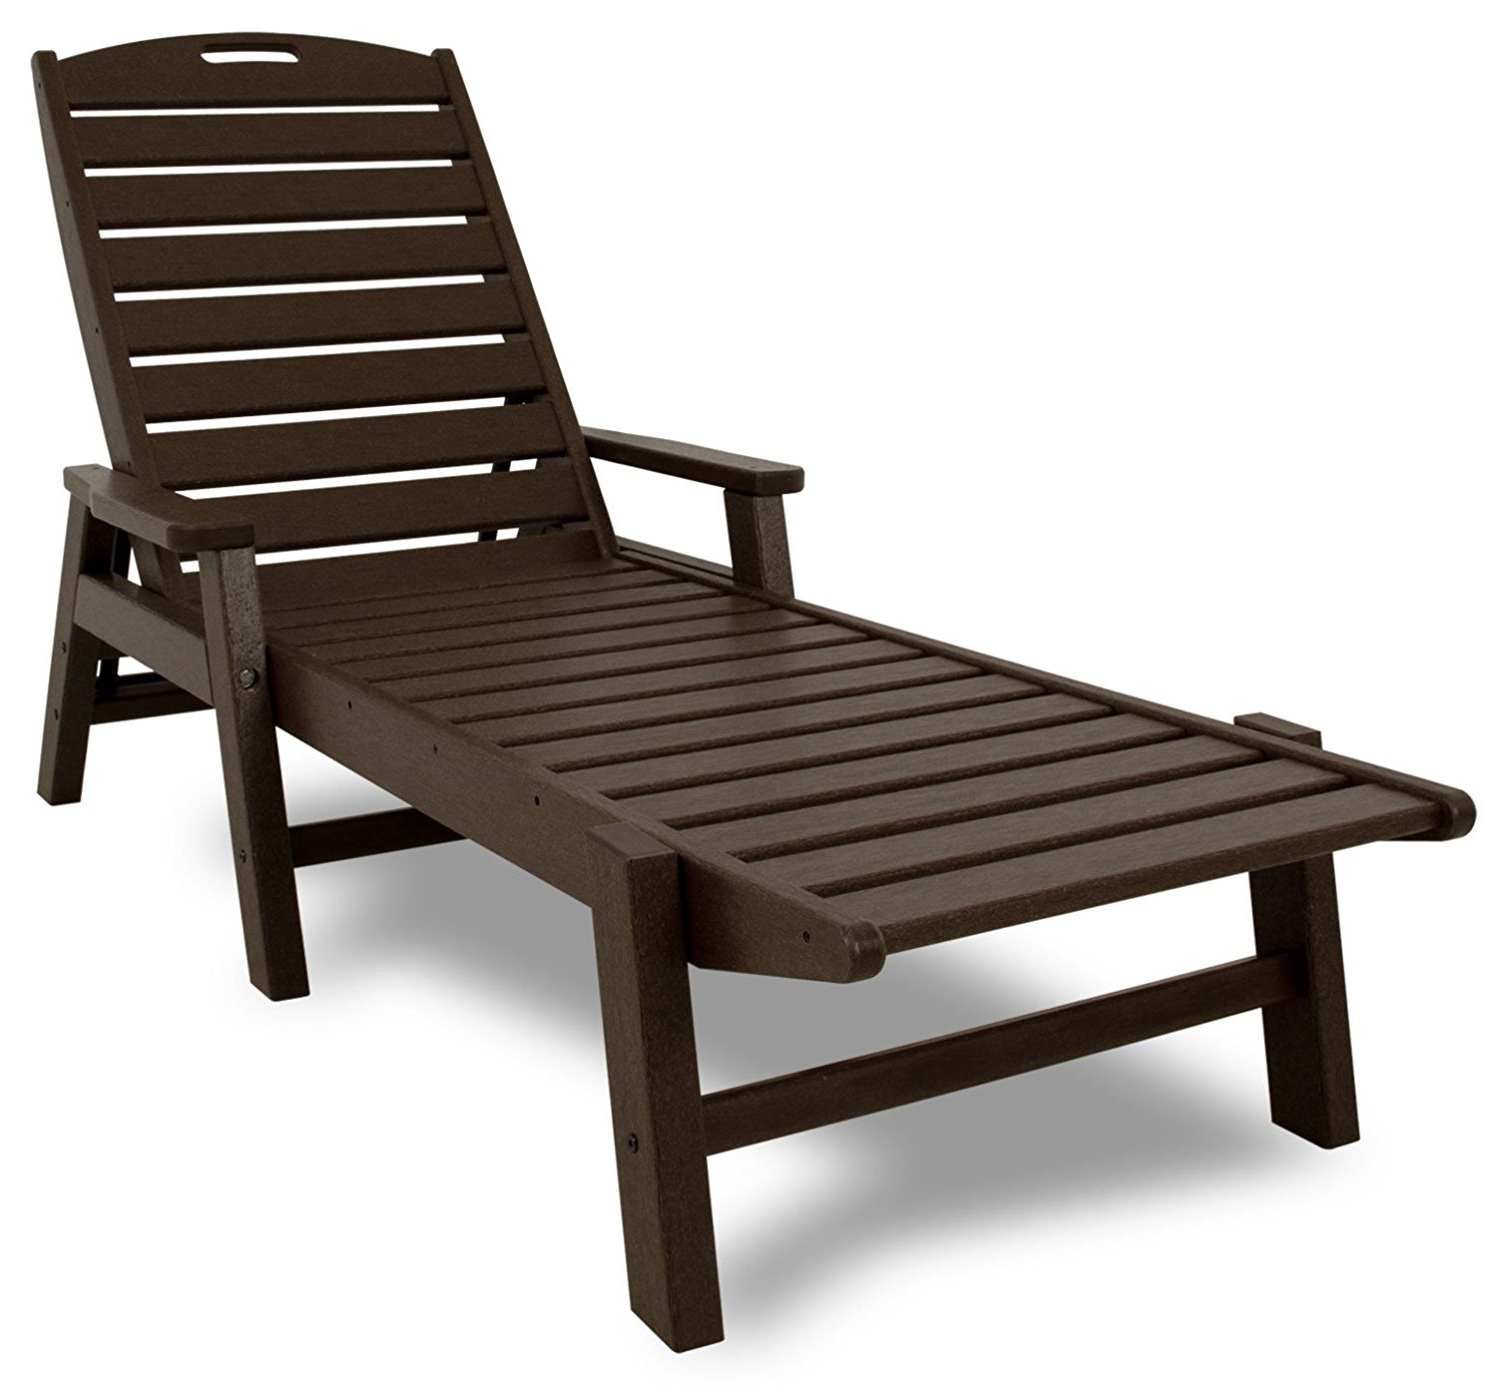 Fashionable Chaise Lounge Chairs For Amazon : Polywood Ncc2280Ma Nautical Chaise With Arms (View 7 of 15)